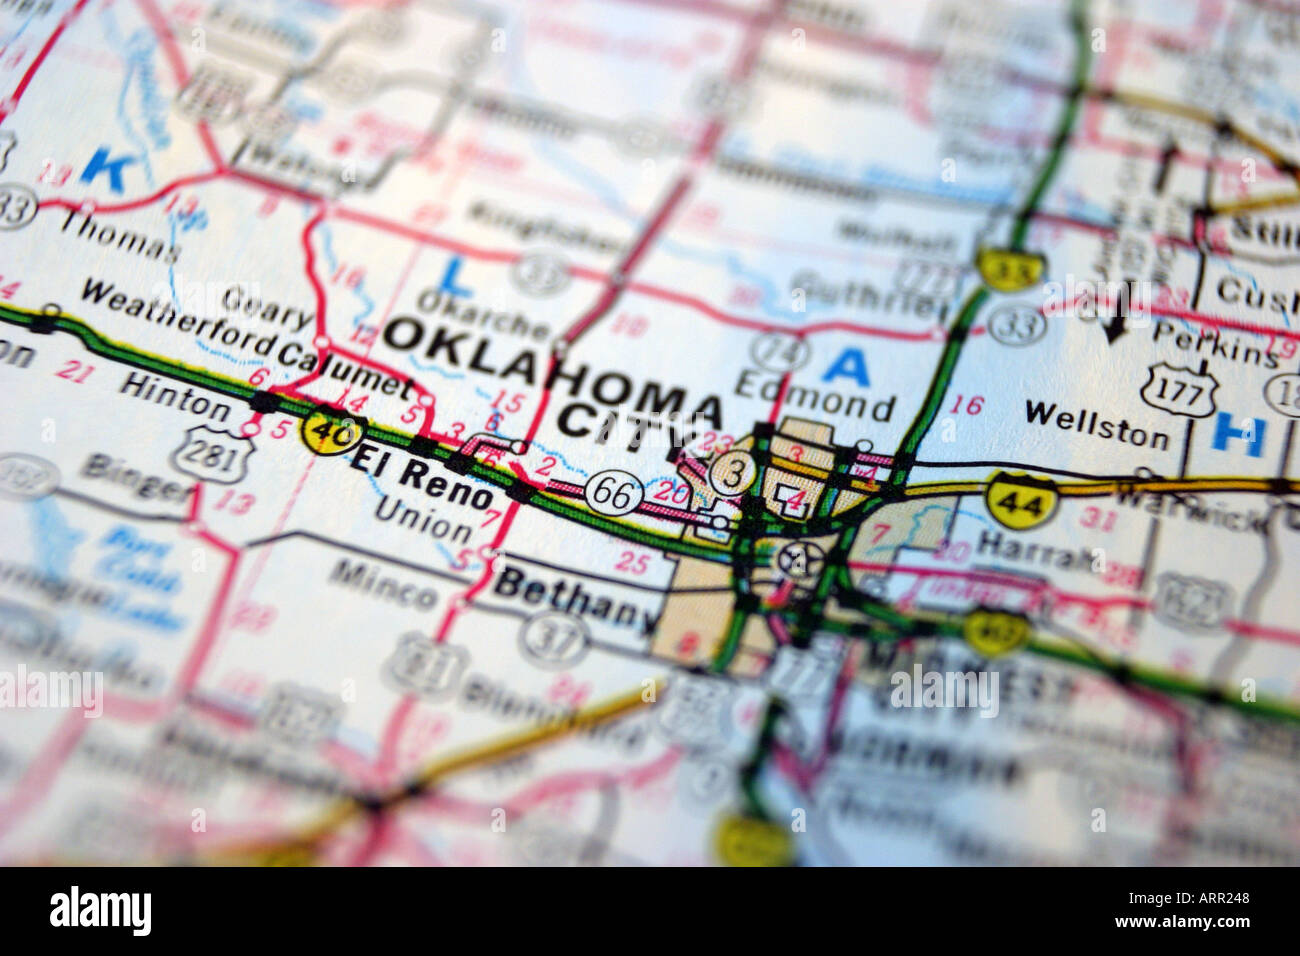 Close up map of oklahoma city stock photo 2994759 alamy close up map of oklahoma city gumiabroncs Image collections